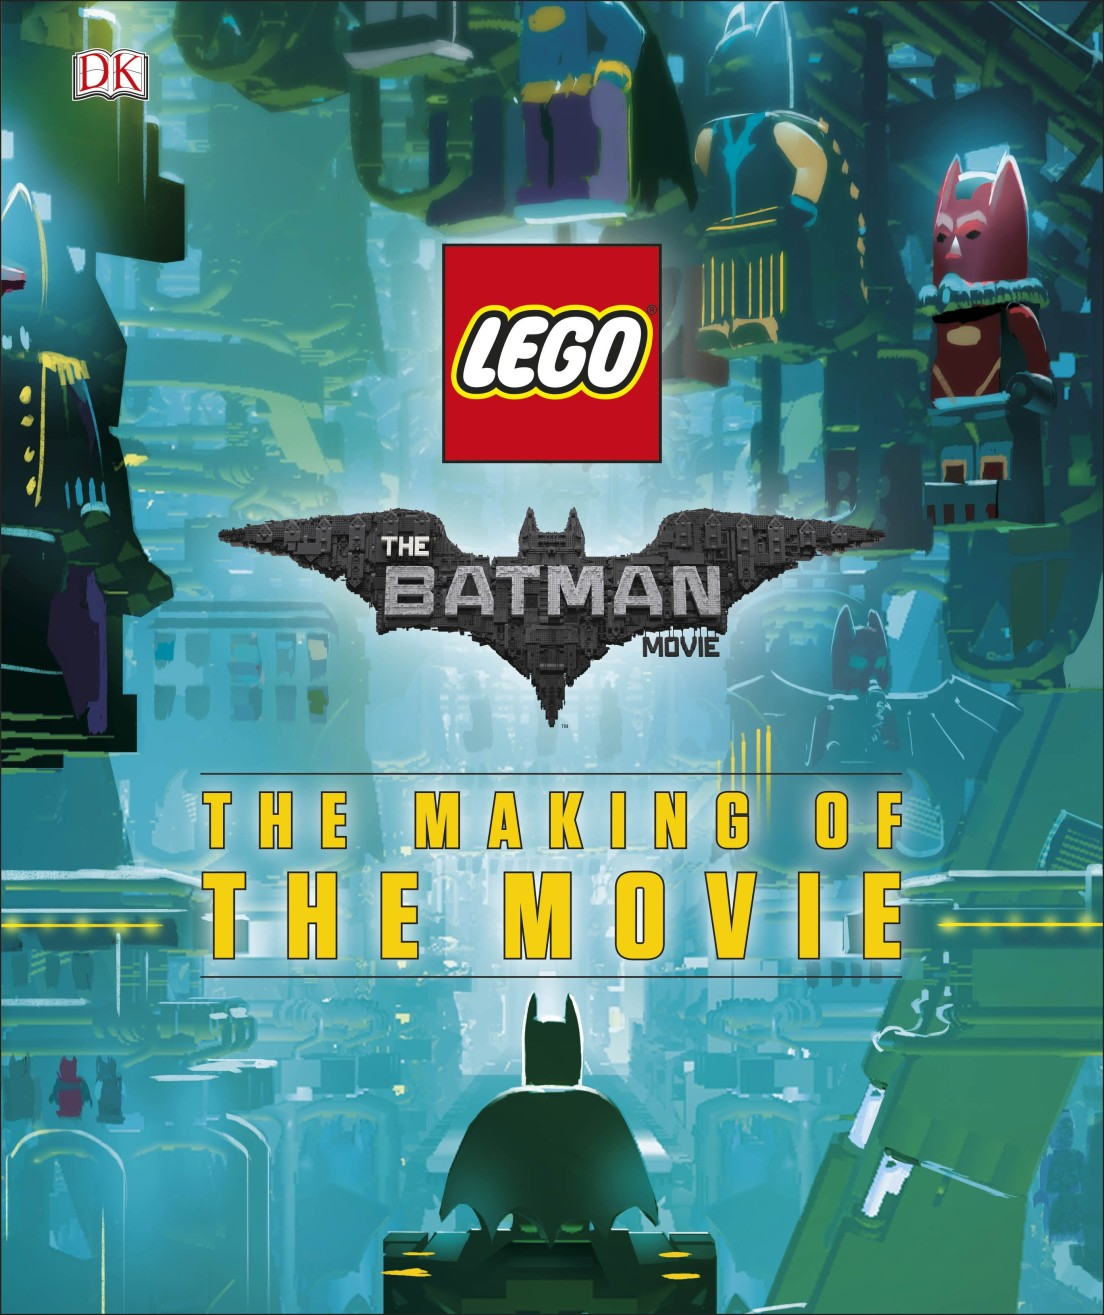 The LEGO Batman Movie: The Making of the Movie (11 pics)